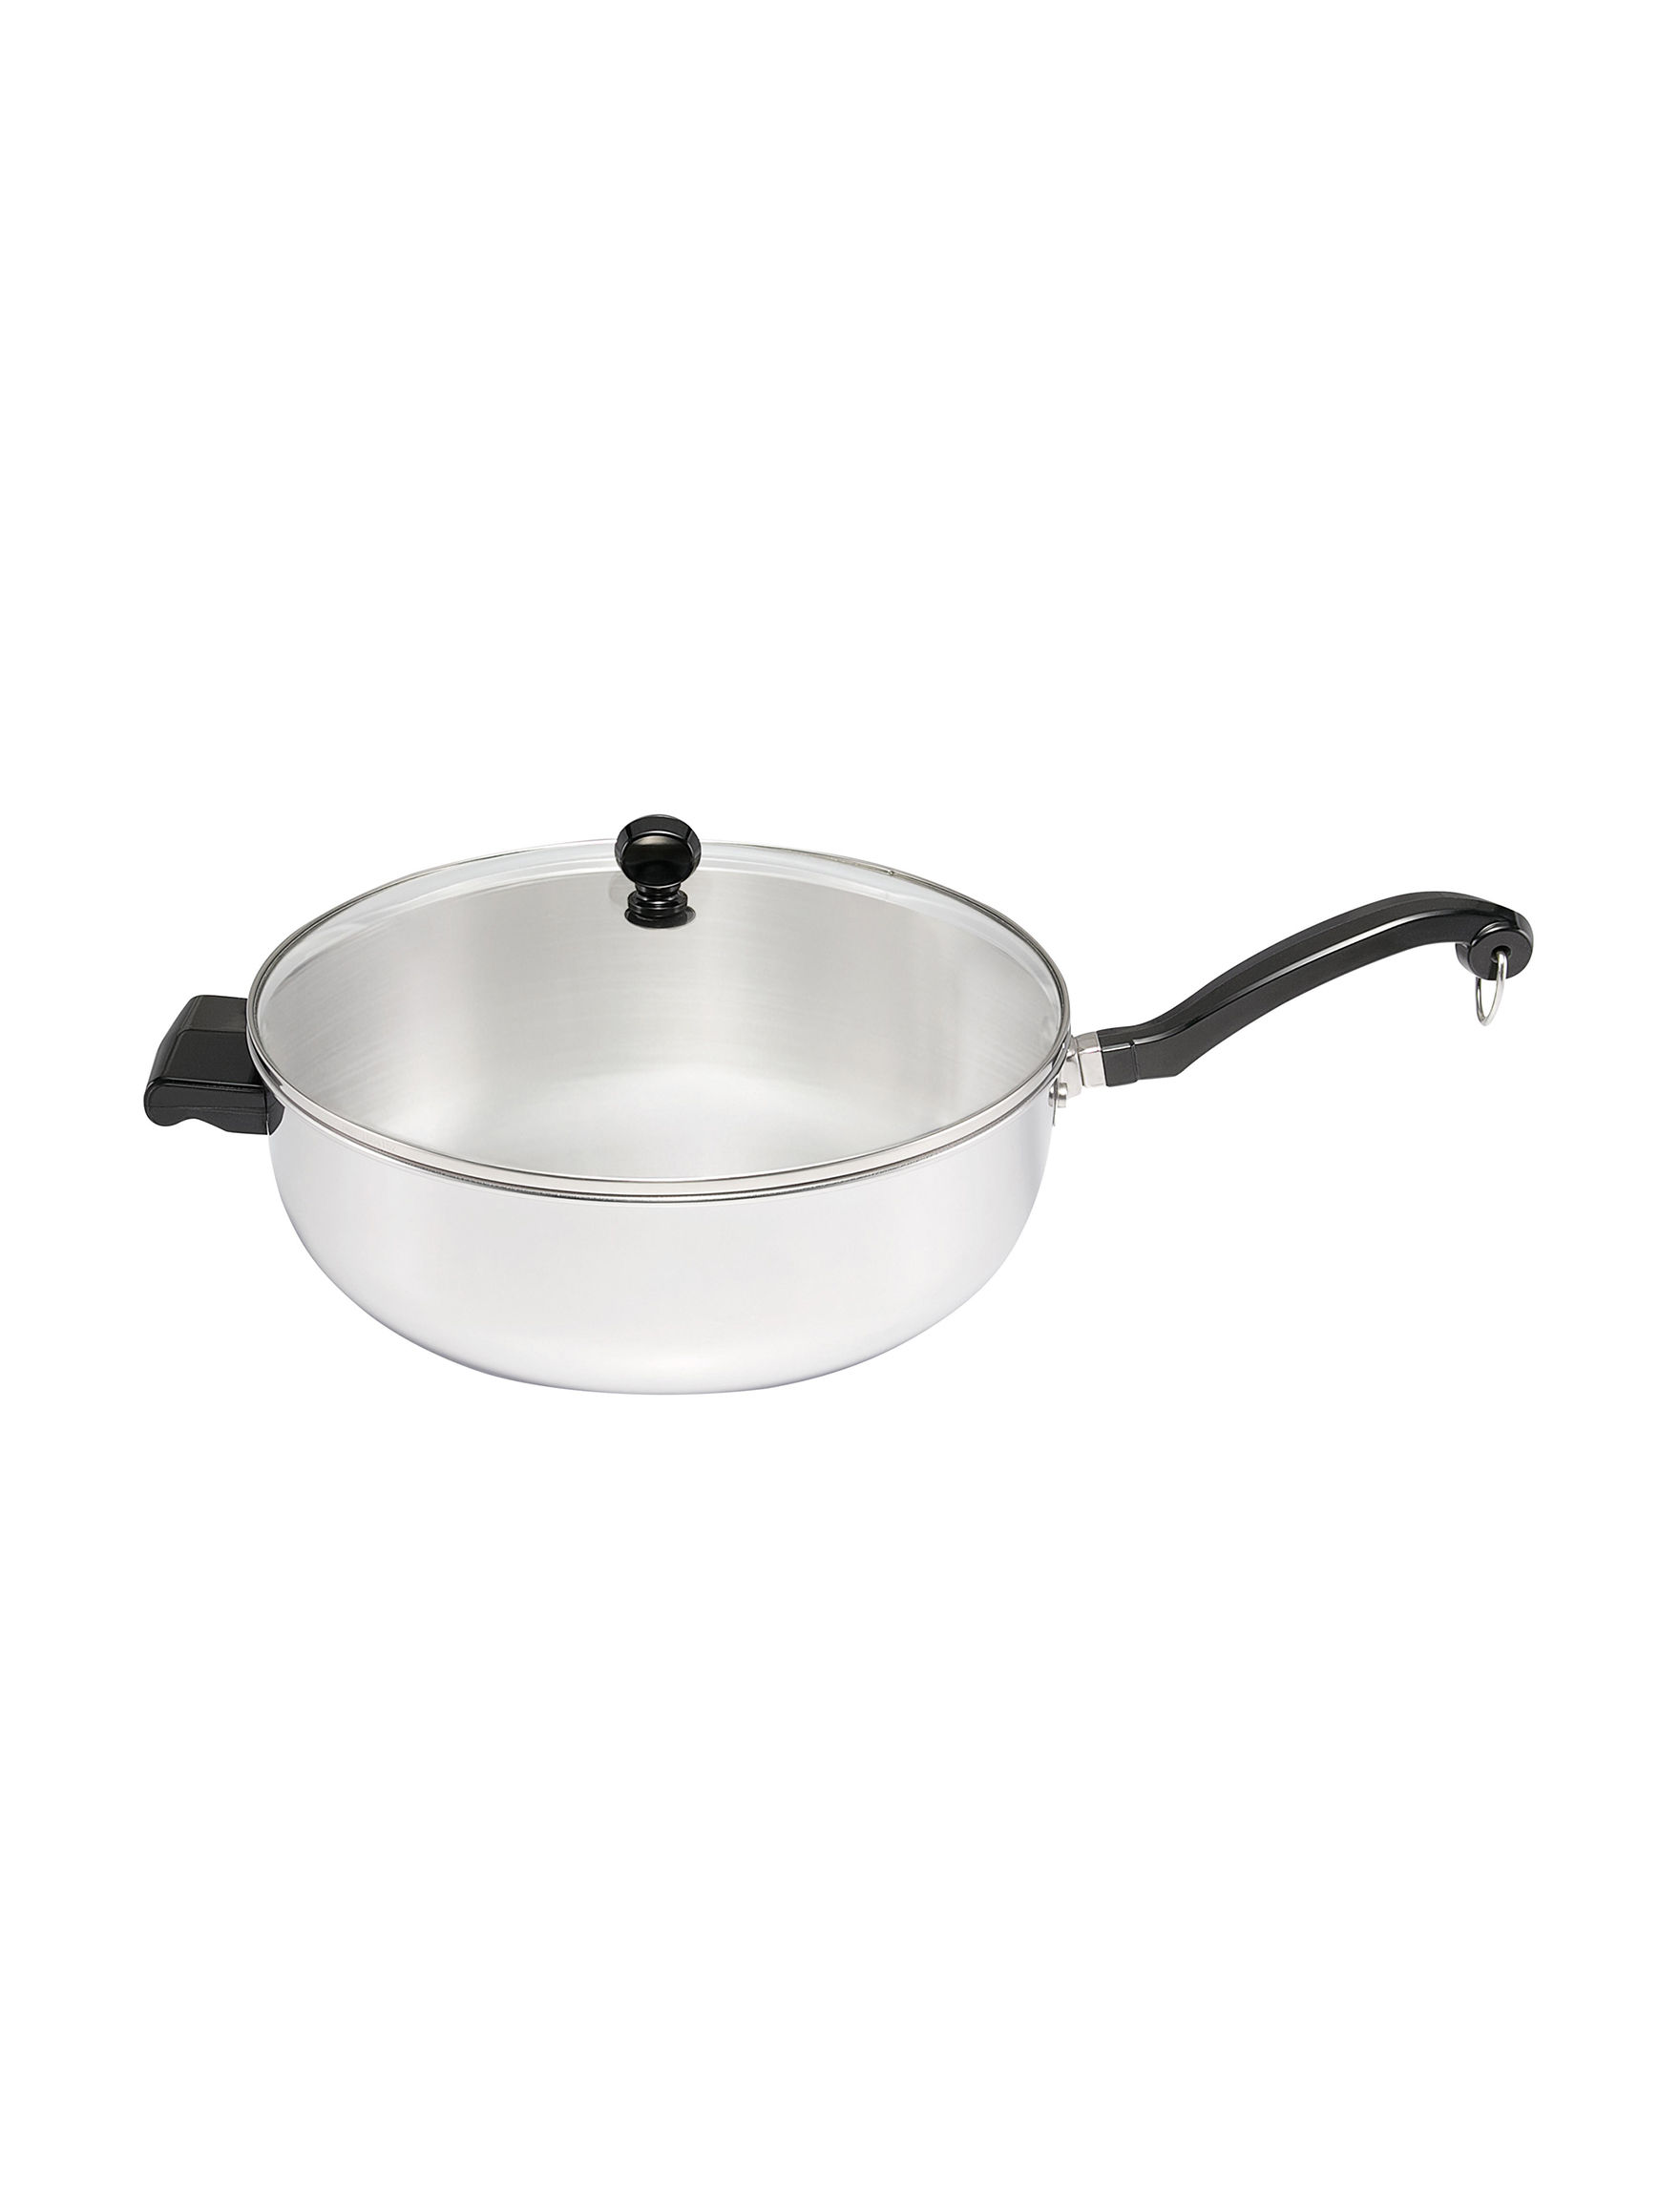 Farberware Silver Frying Pans & Skillets Cookware